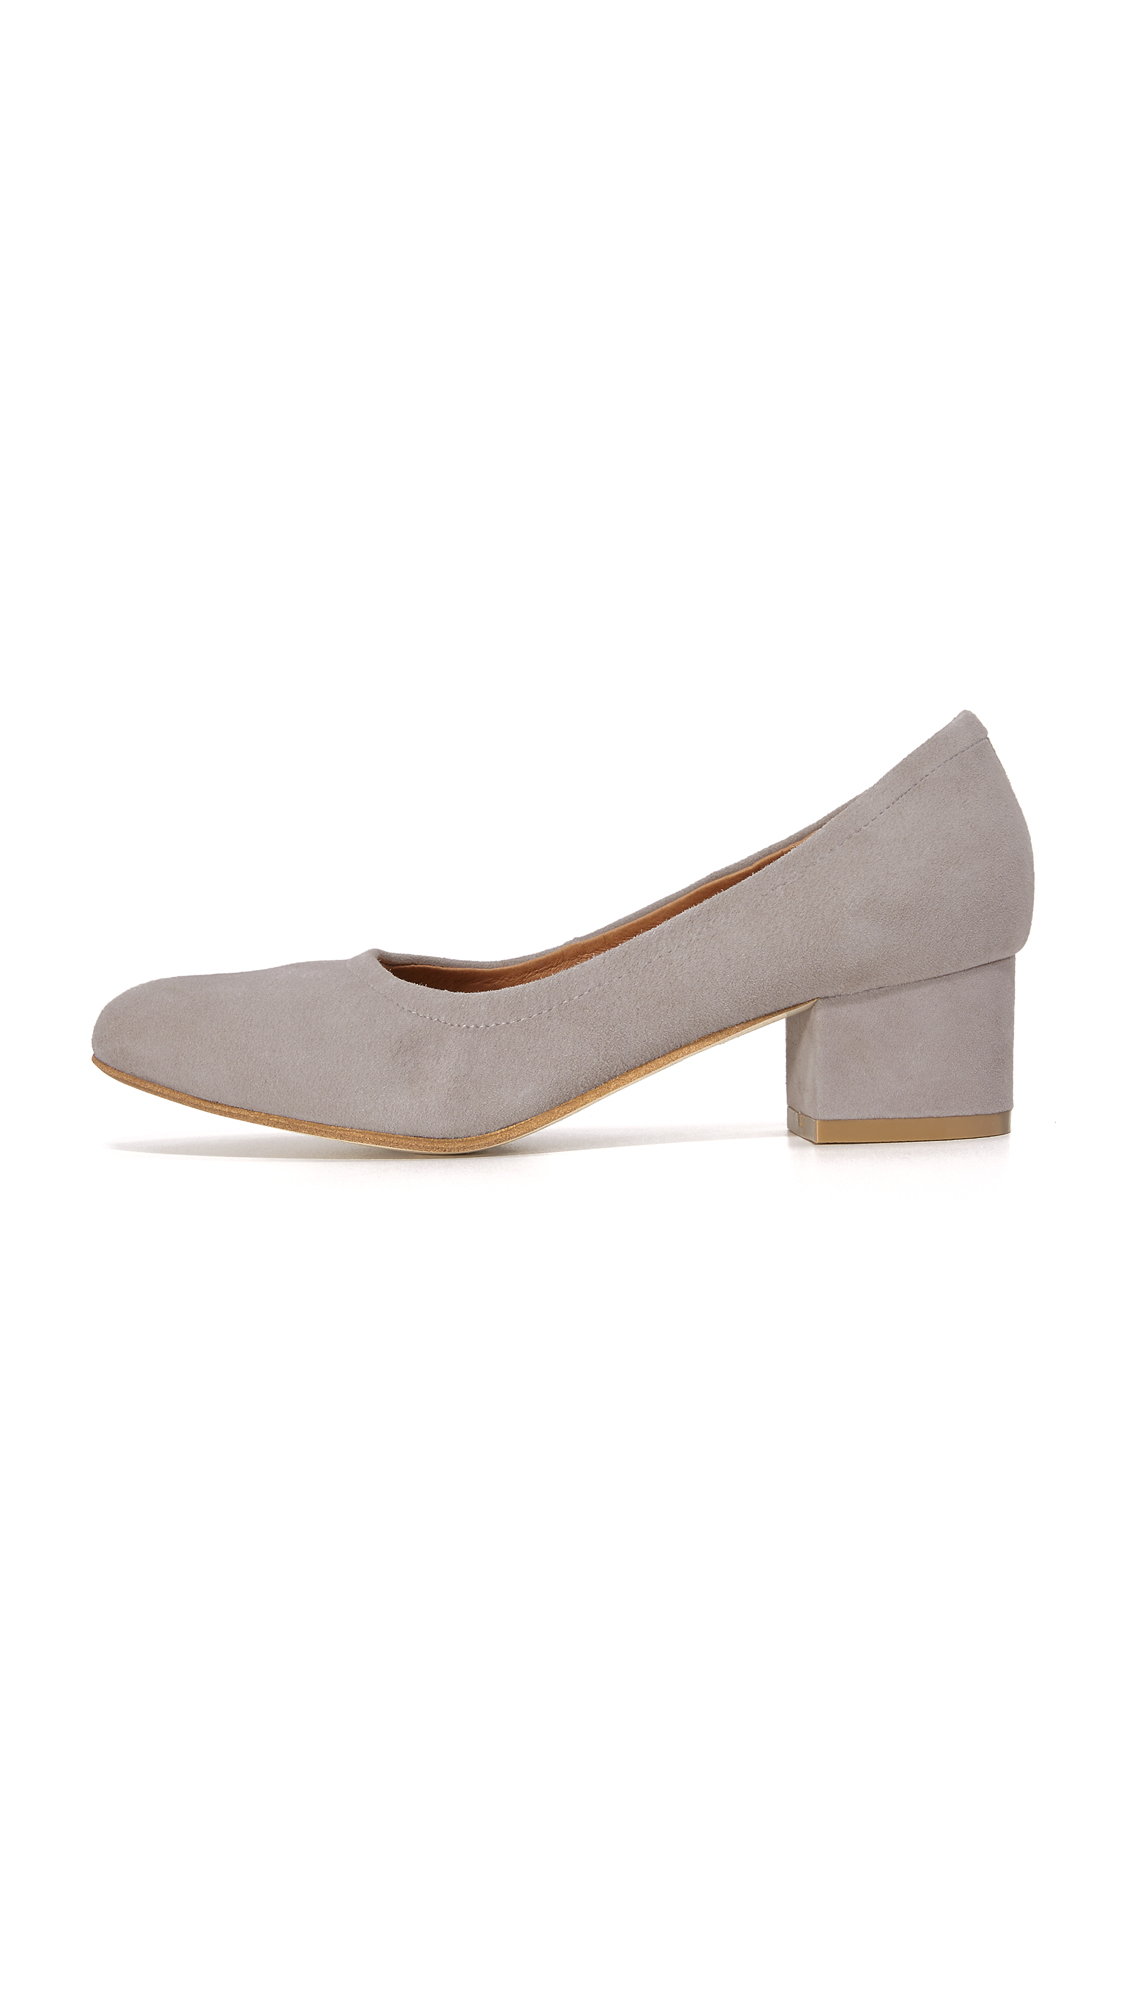 f8afadd07f3 Lyst - Jeffrey Campbell Bitsie Pumps in Gray